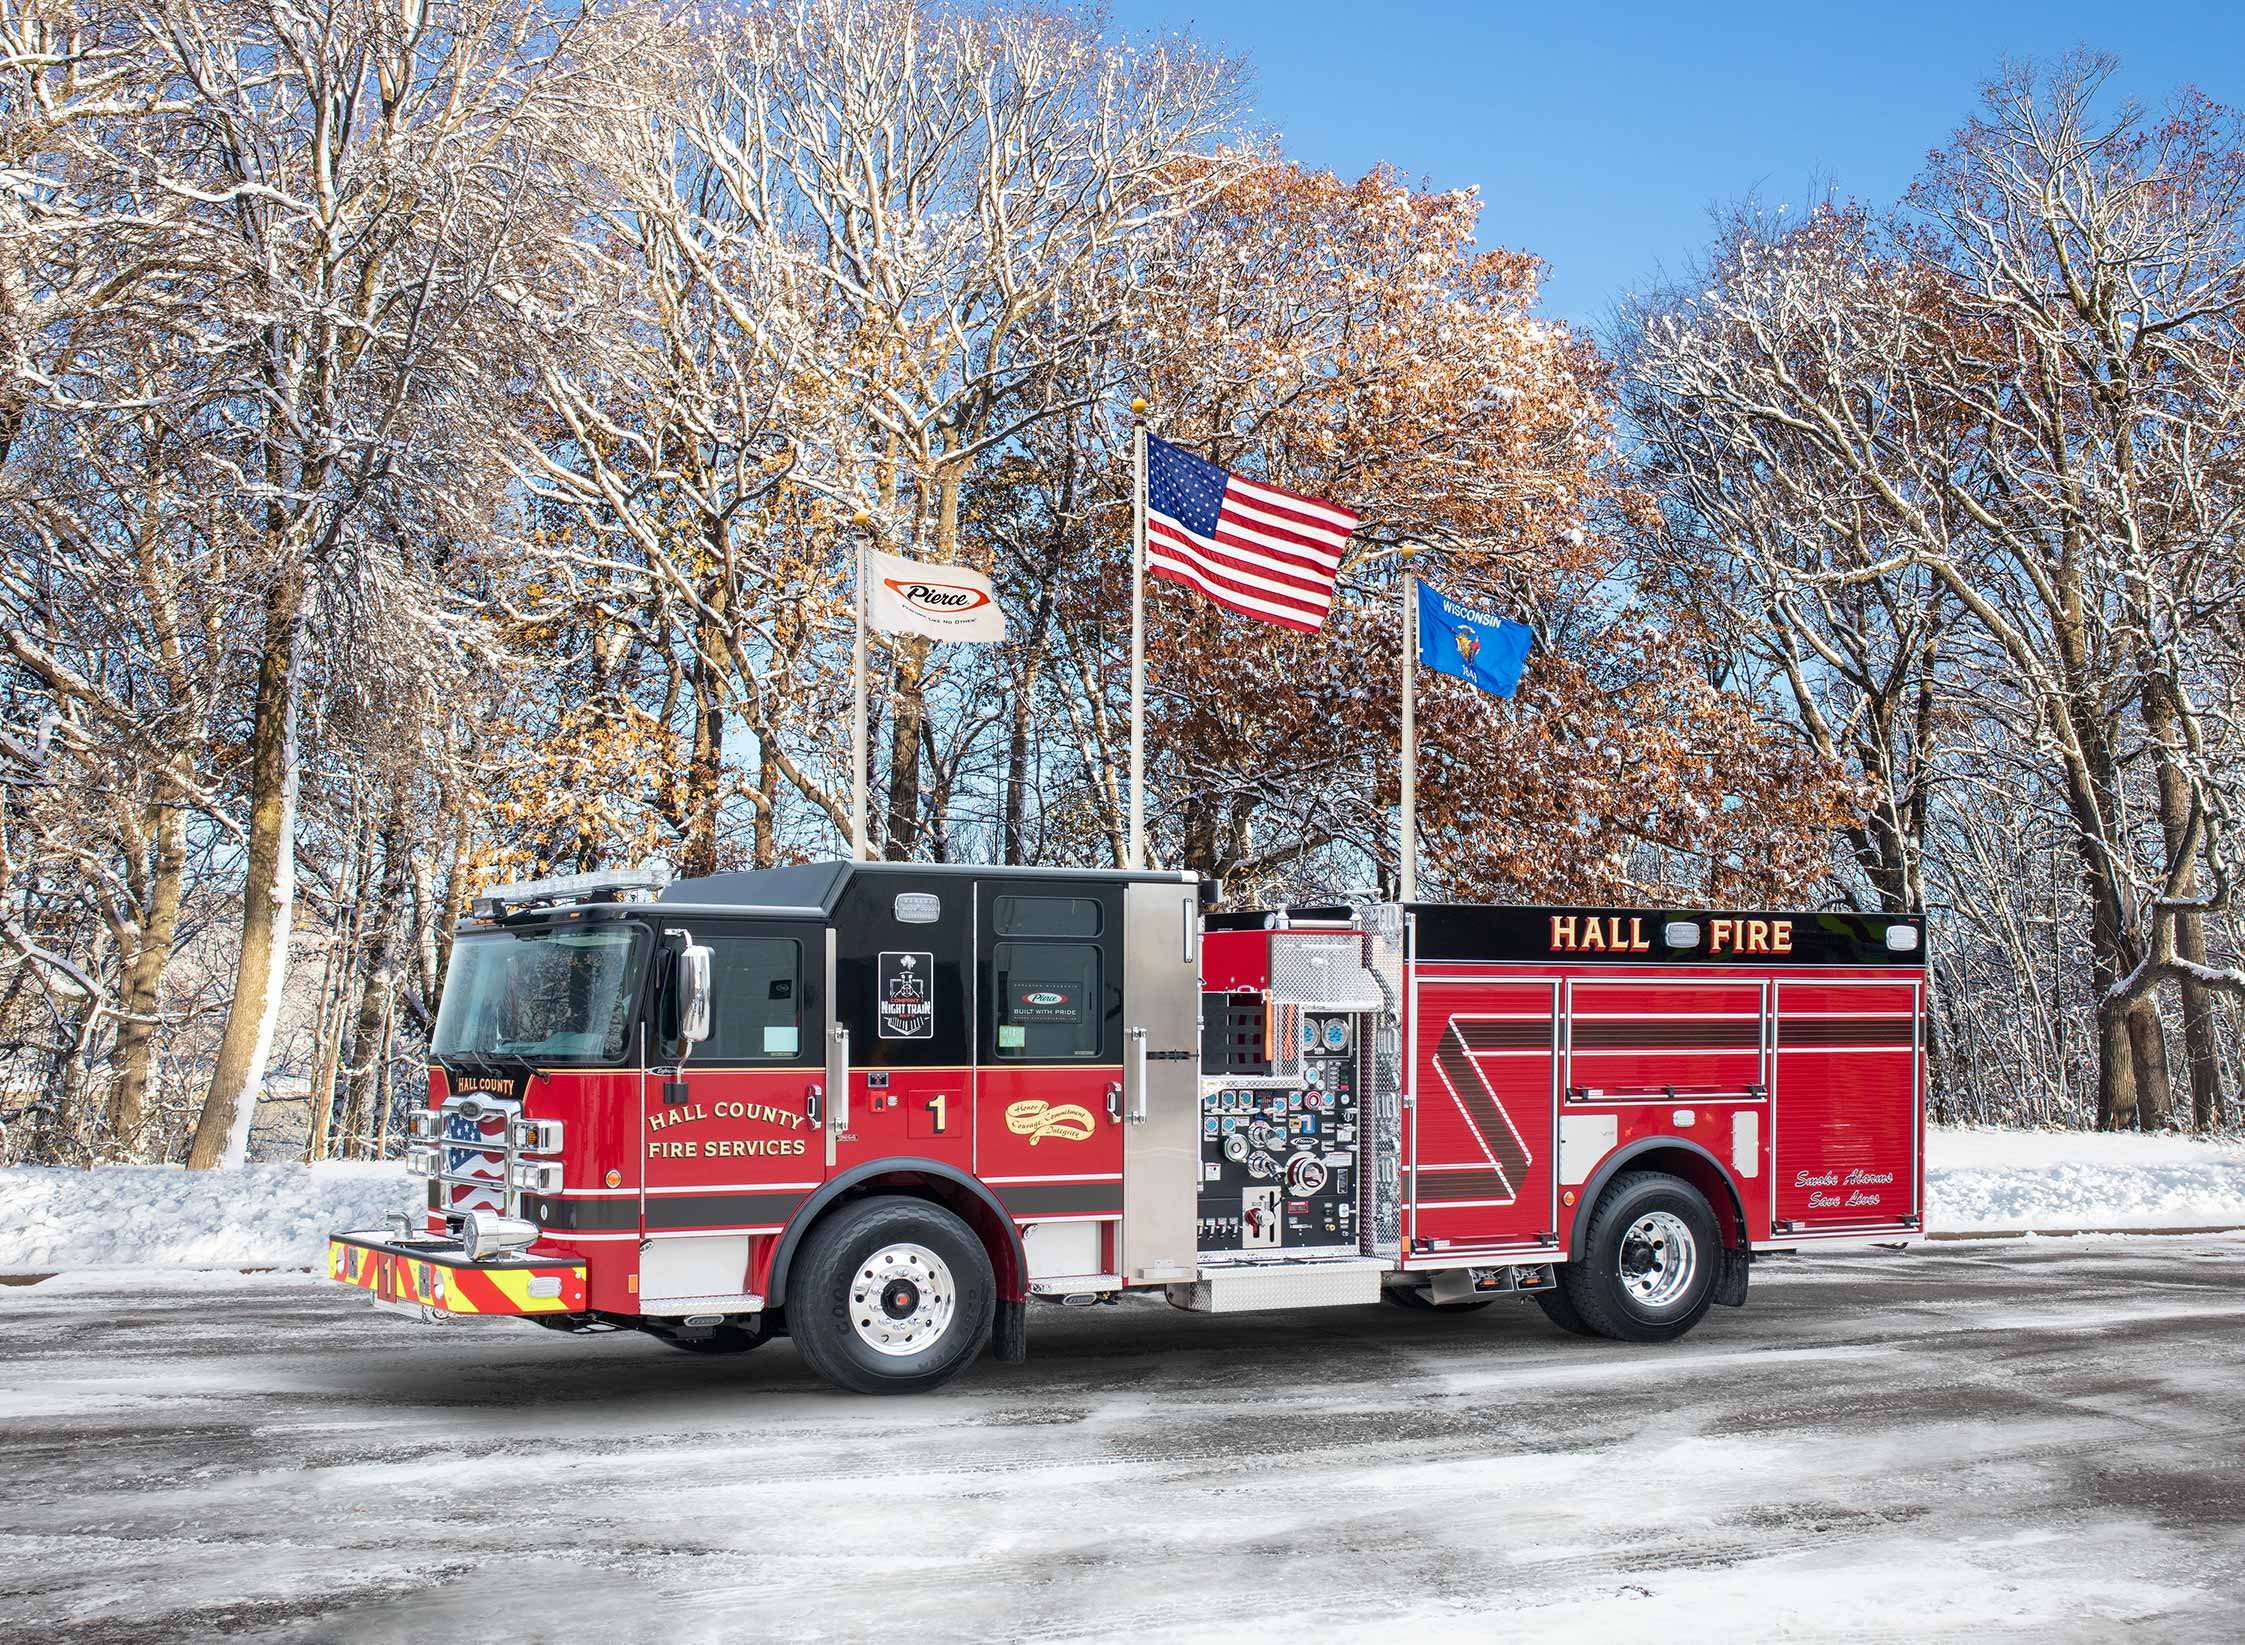 Hall County Fire Services - Pumper